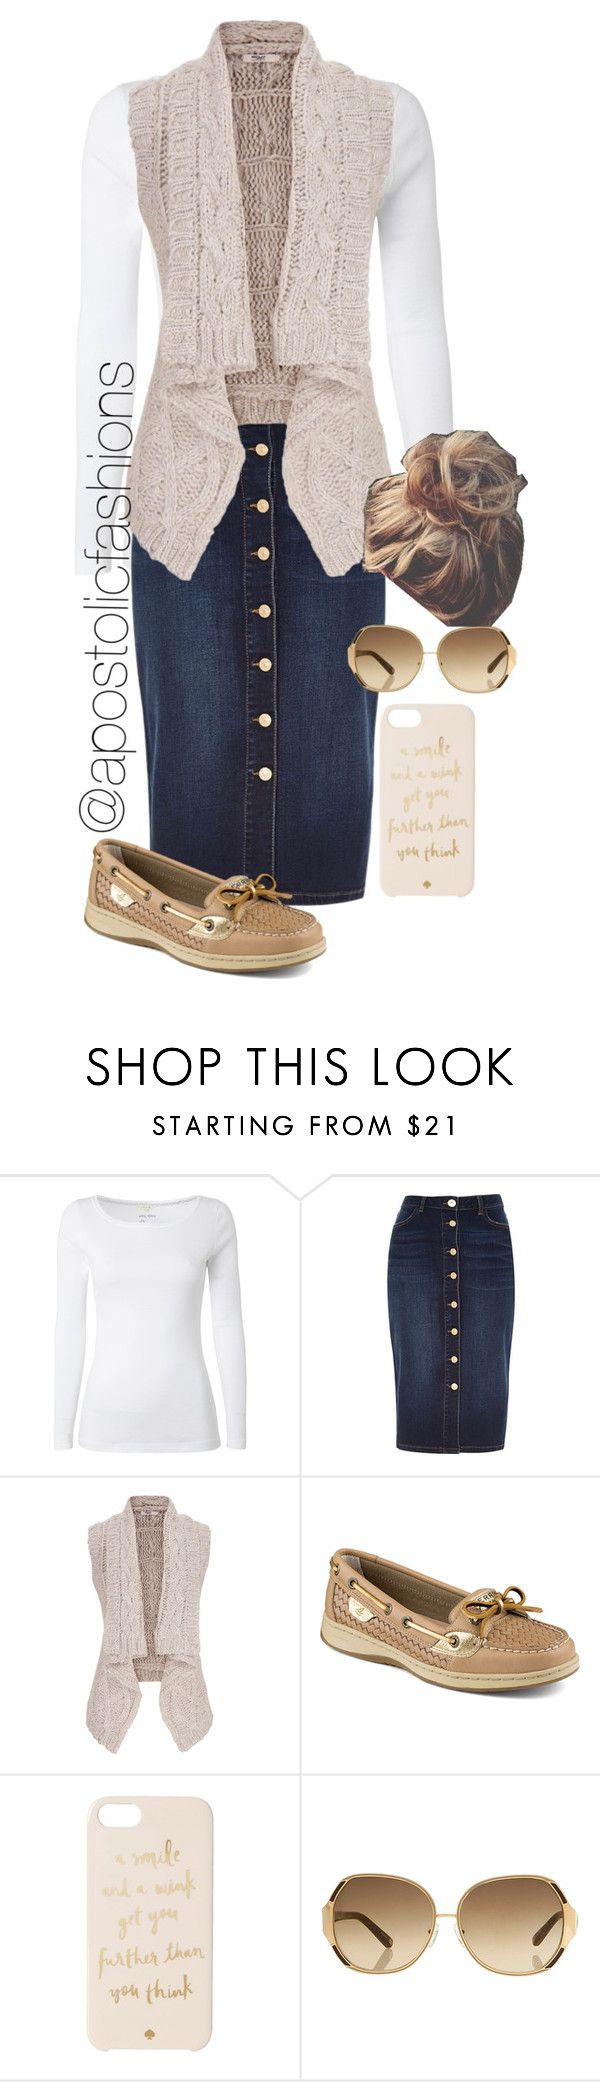 """Apostolic Fashions #854"" by apostolicfashions on Polyvore featuring White Stuff, River Island, maurices, Sperry Top-Sider, Kate Spade and Oscar de la Renta"